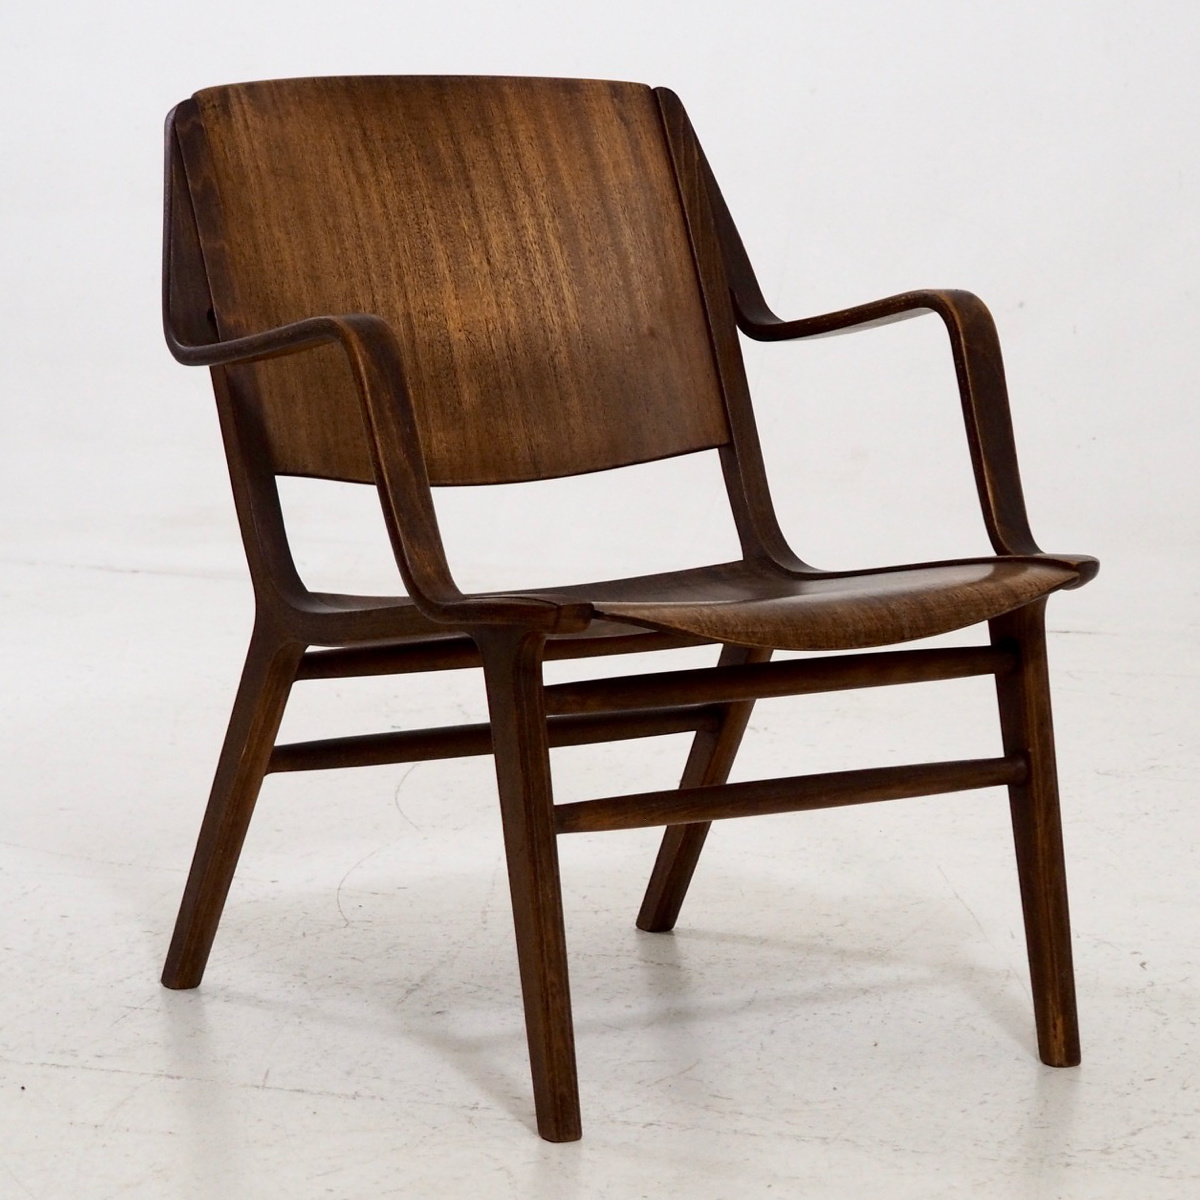 Rare Danish AX-chair, circa 1960´s. - € 1.000